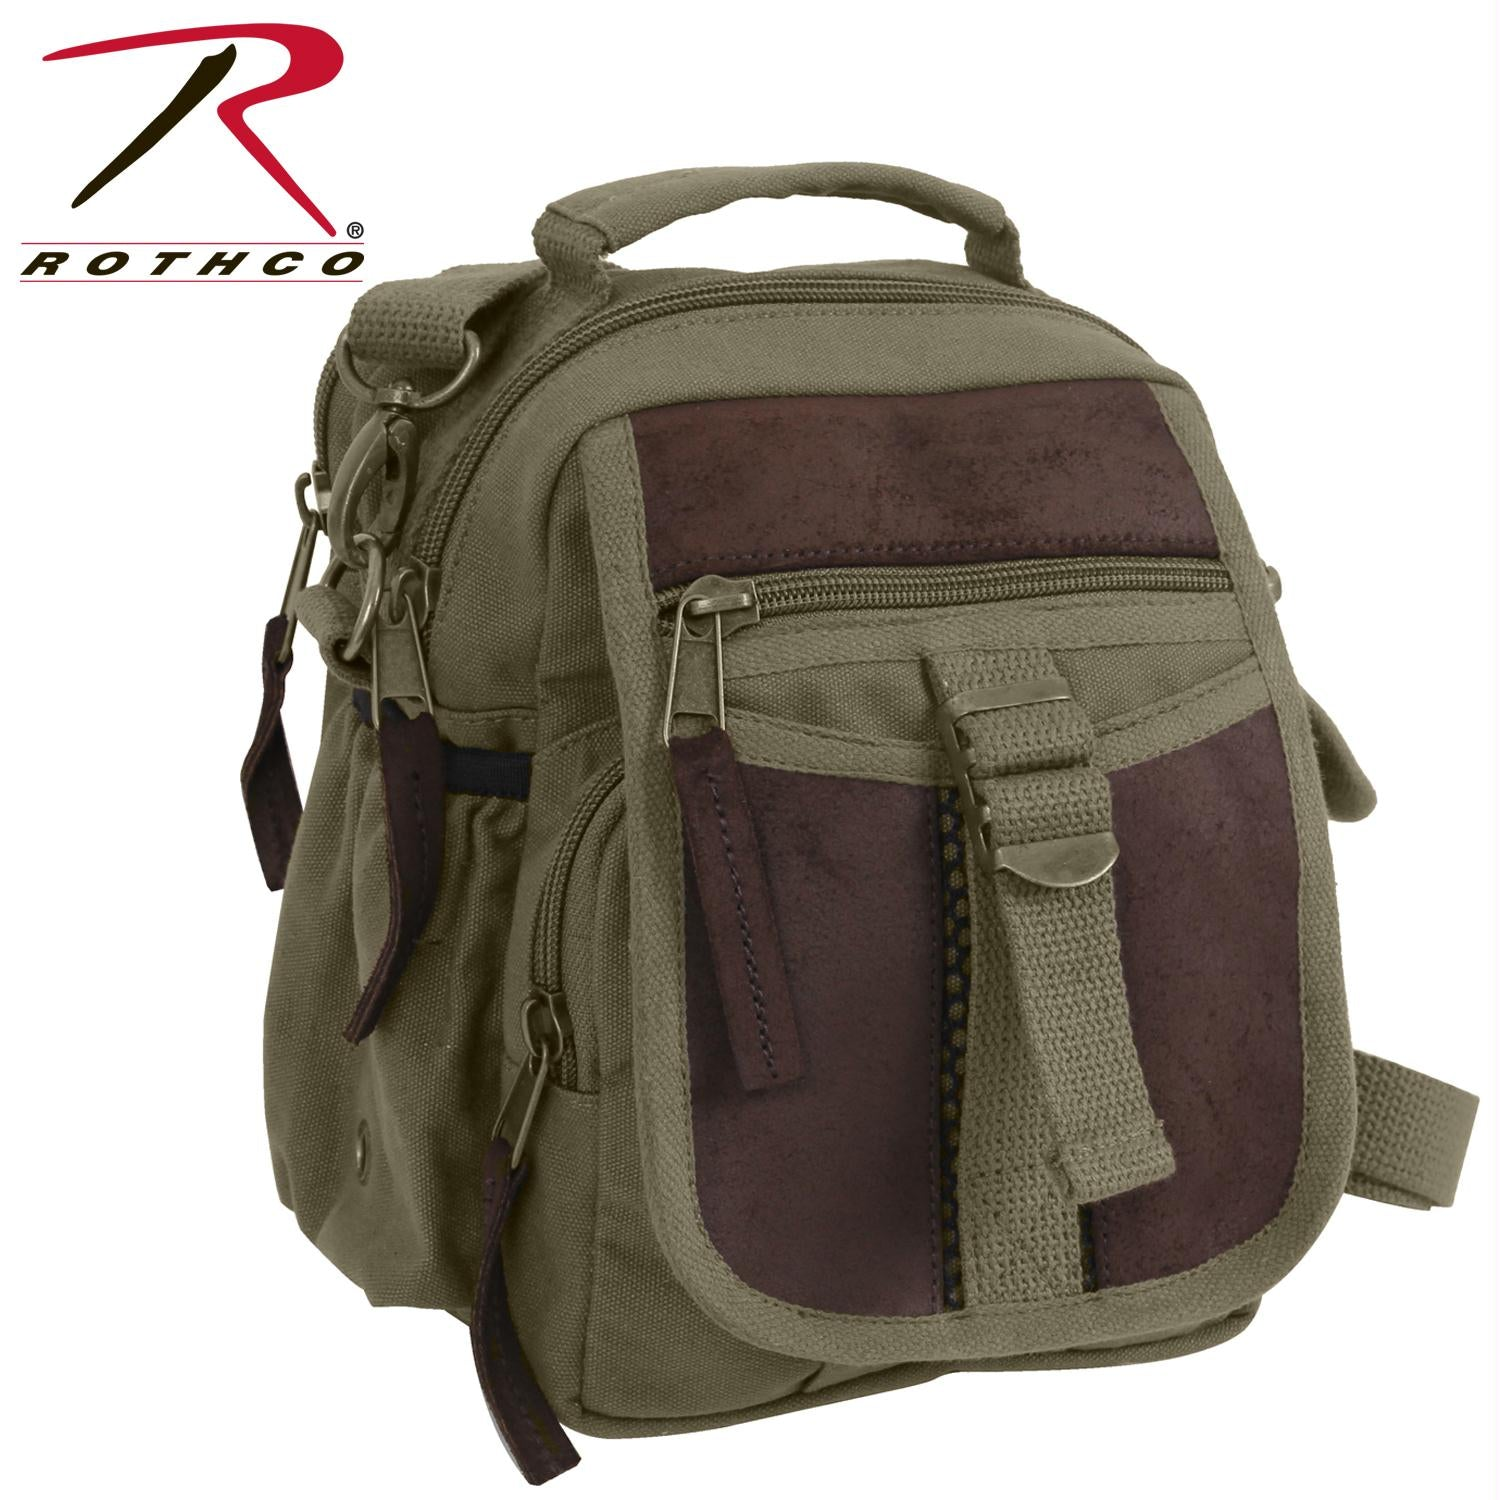 Rothco Canvas & Leather Travel Shoulder Bag - Olive Drab